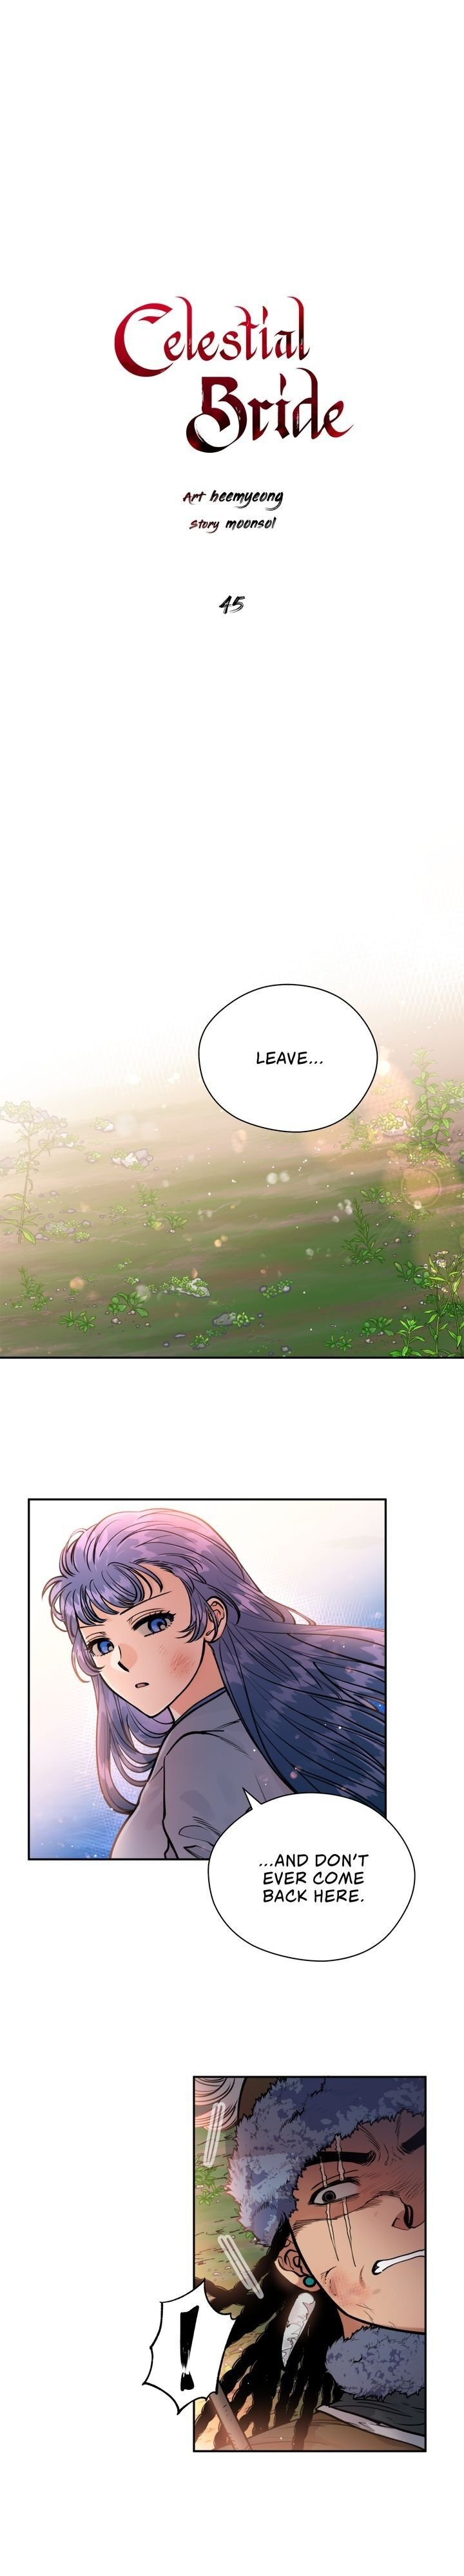 Manga Heavenly Bride - Chapter 45 Page 1